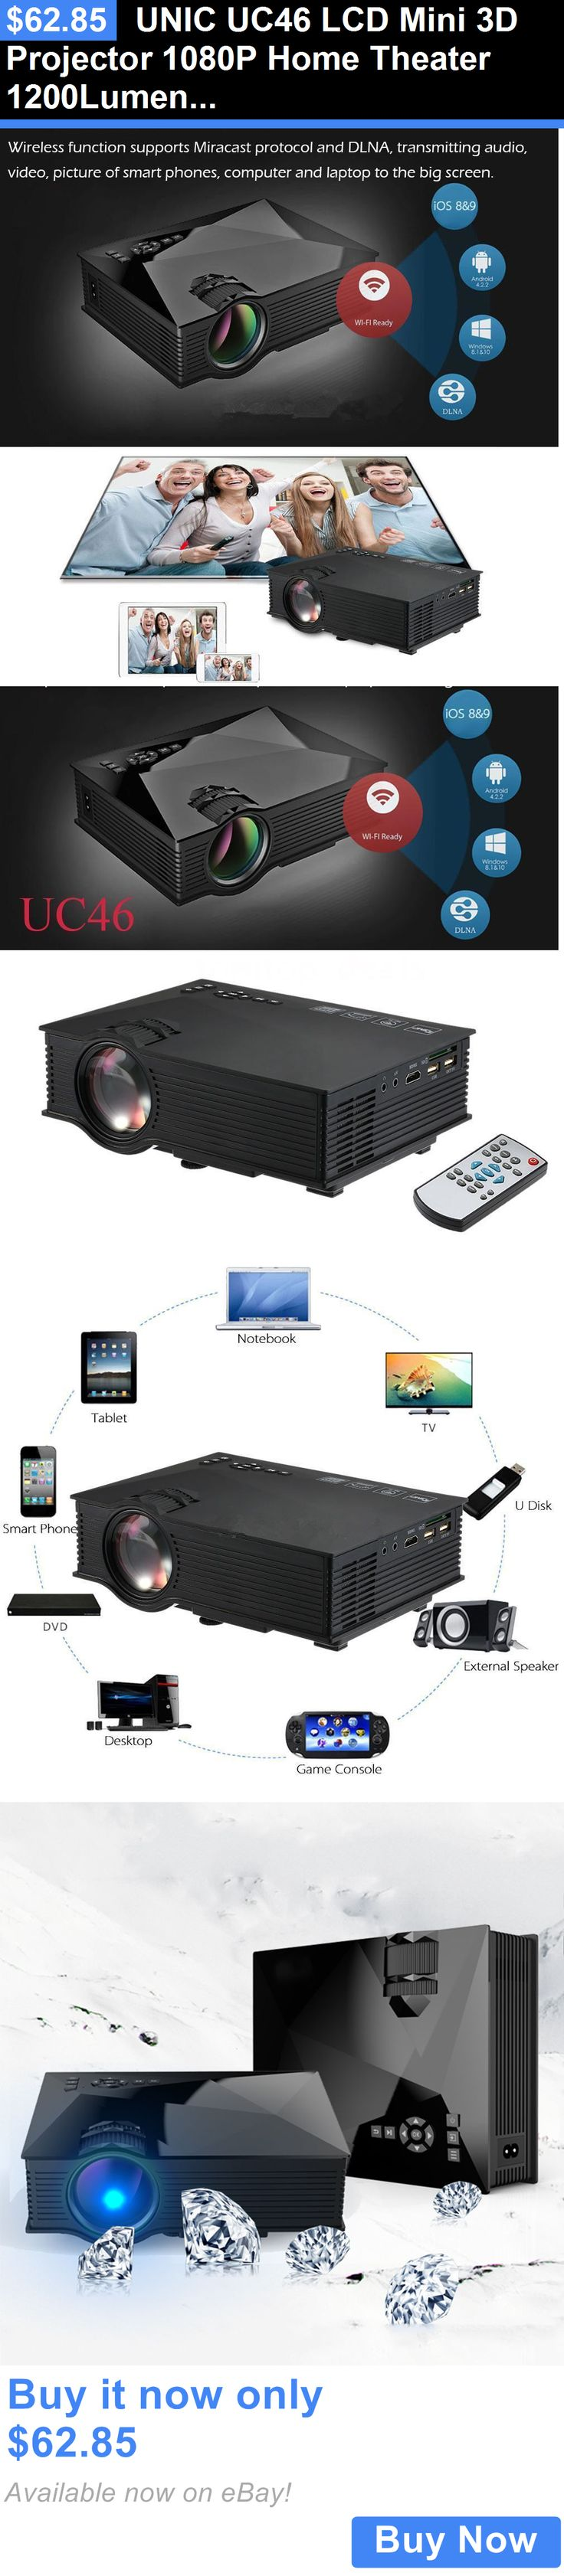 Home Theater Projectors: Unic Uc46 Lcd Mini 3D Projector 1080P Home Theater 1200Lumens Wifi Hdmi Tv Usb A BUY IT NOW ONLY: $62.85